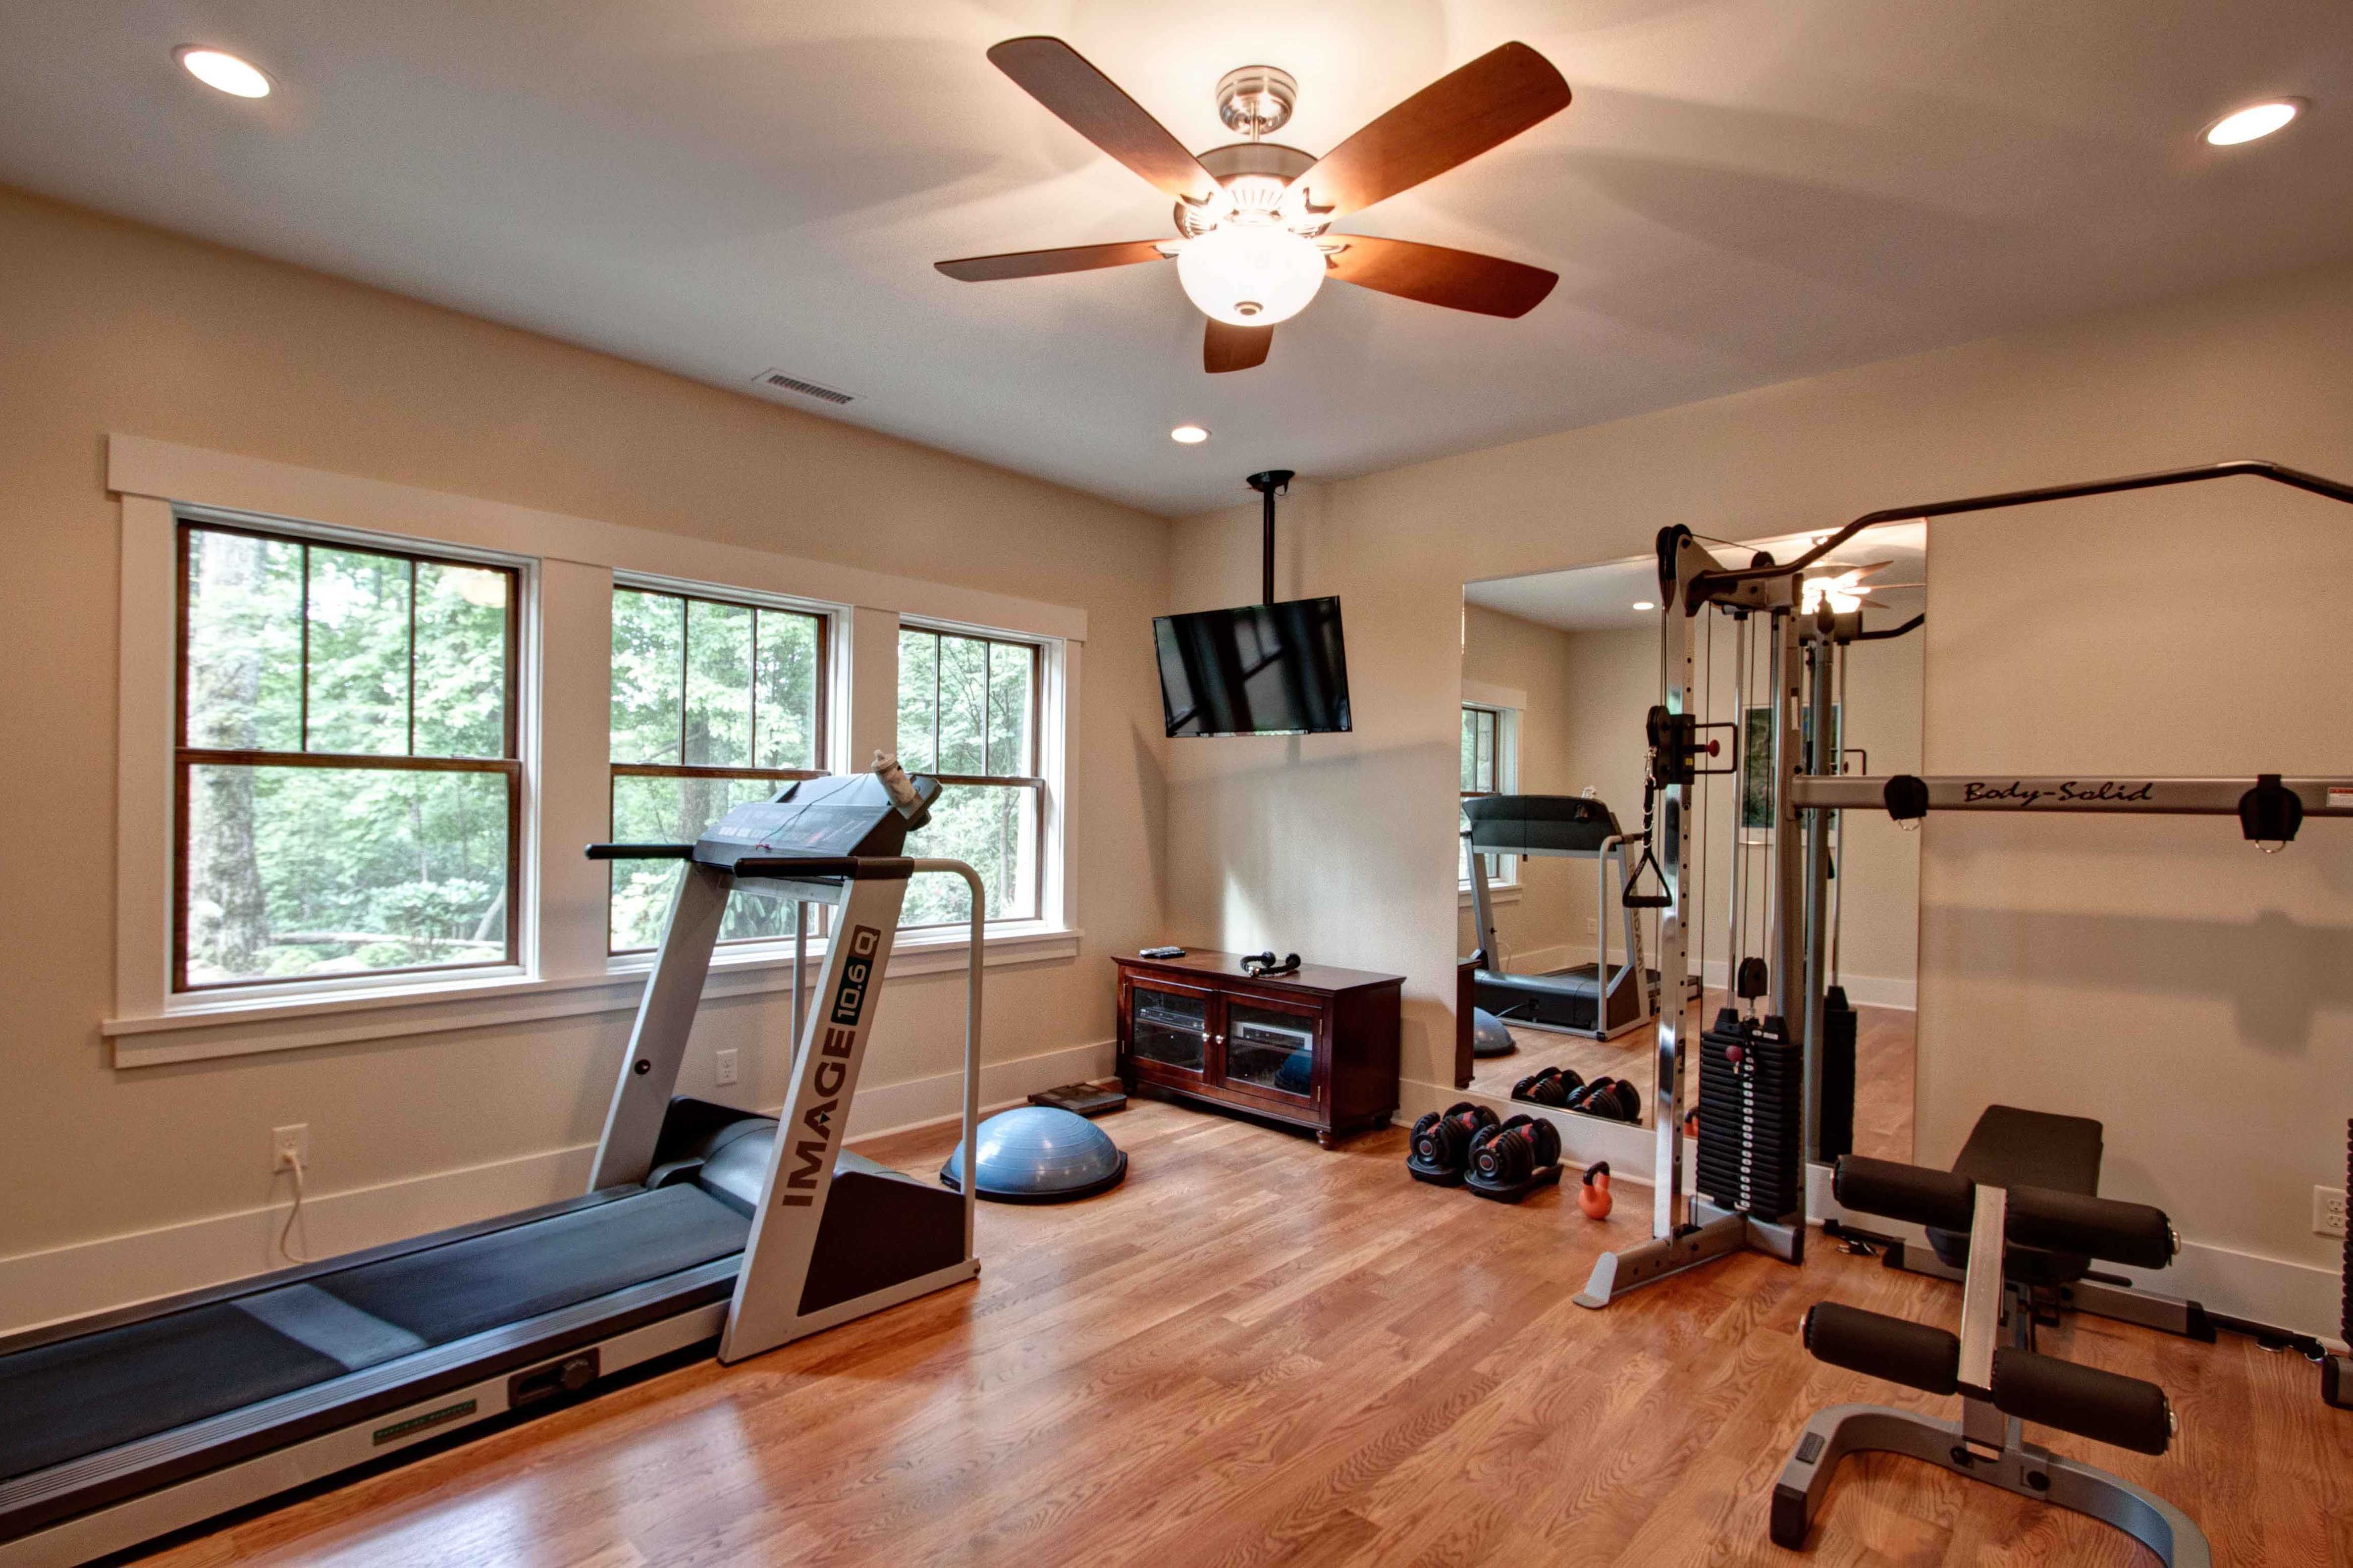 Exercise Room Design Your Dream House Small Home Gyms Home Gym Design